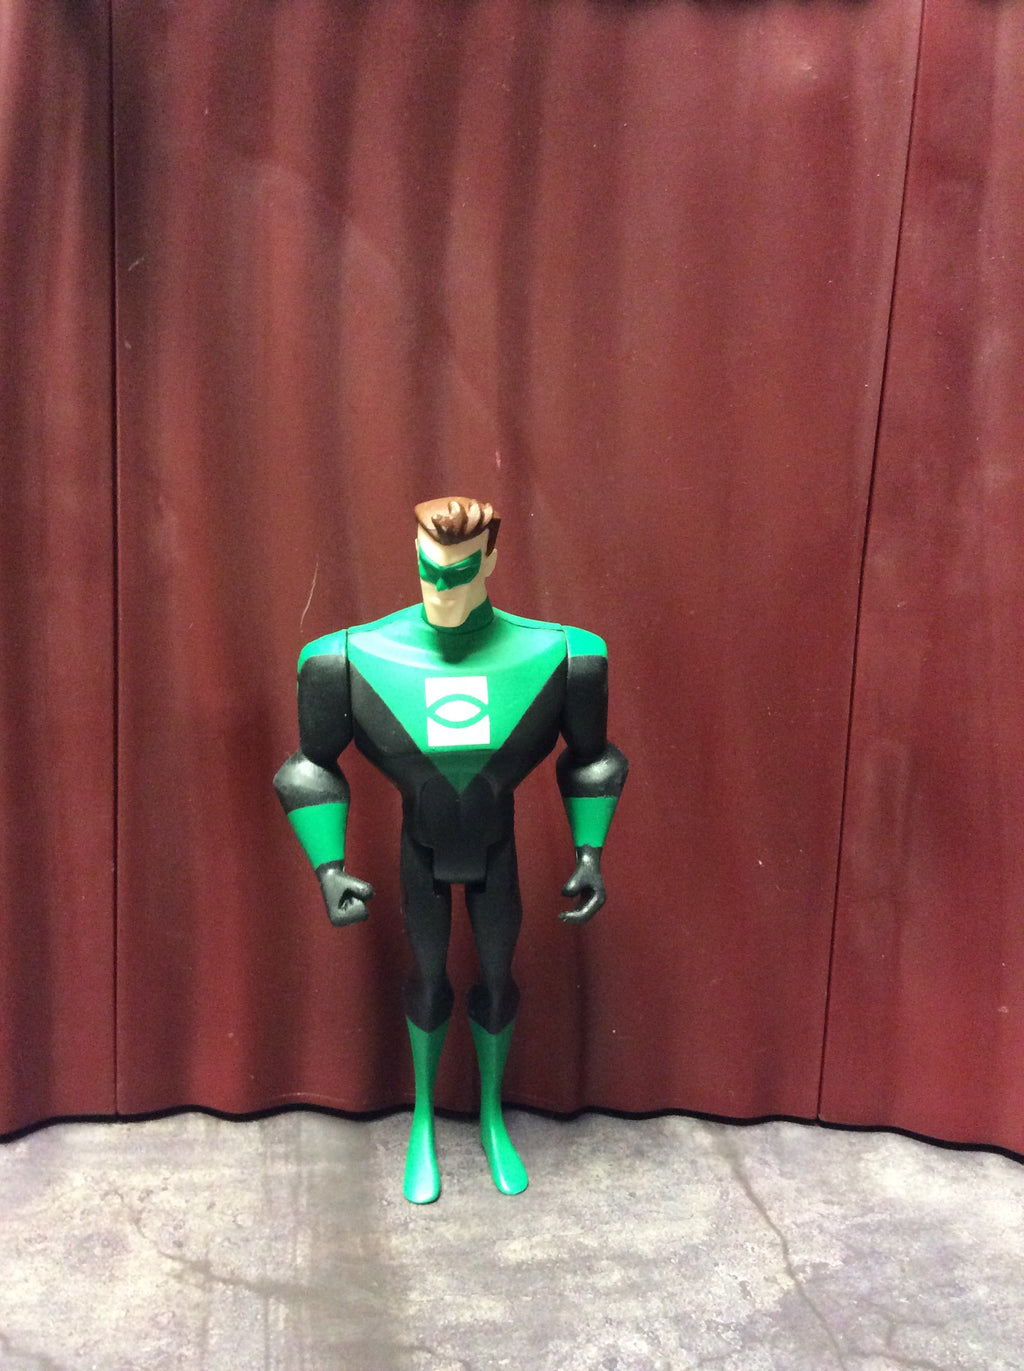 Mattel DC Universe Justice League Unlimited Green Lantern Kyle Rayner